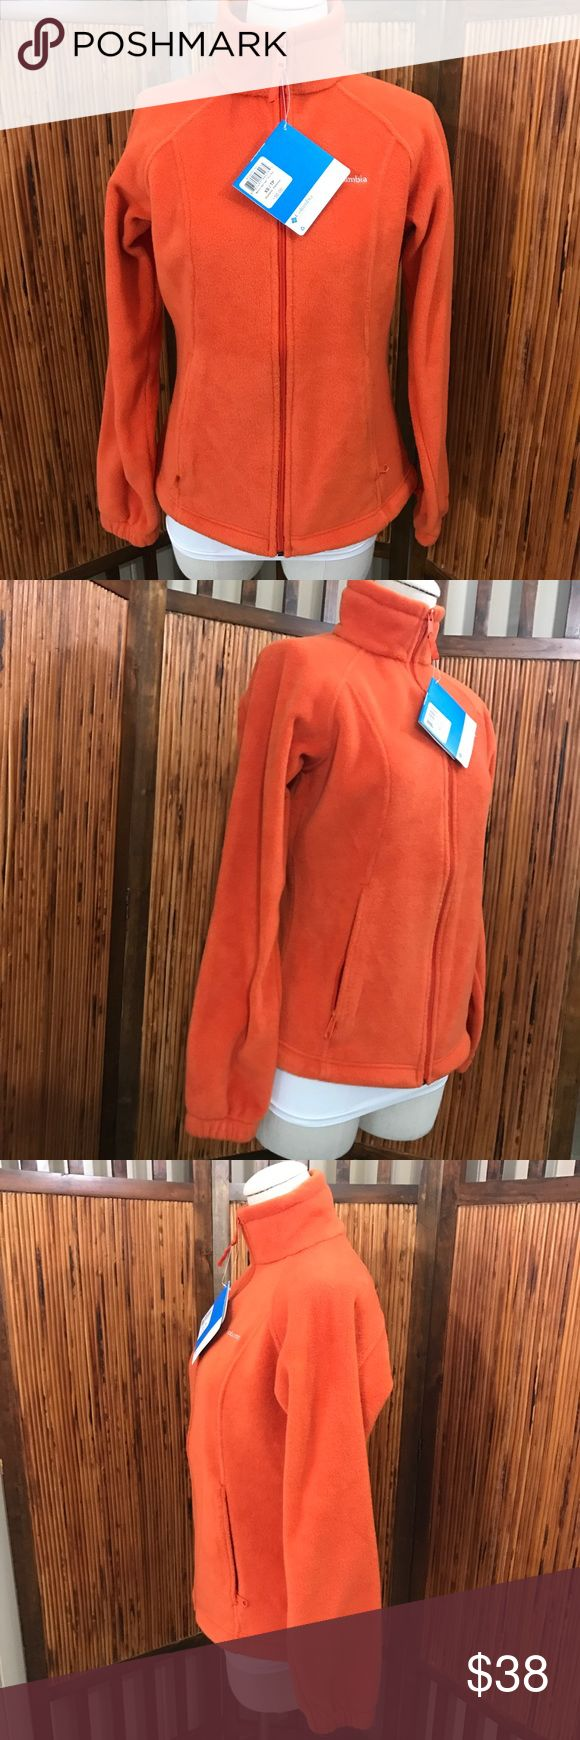 Columbia orange zip up fleece new with tags Nwt Columbia Jackets & Coats